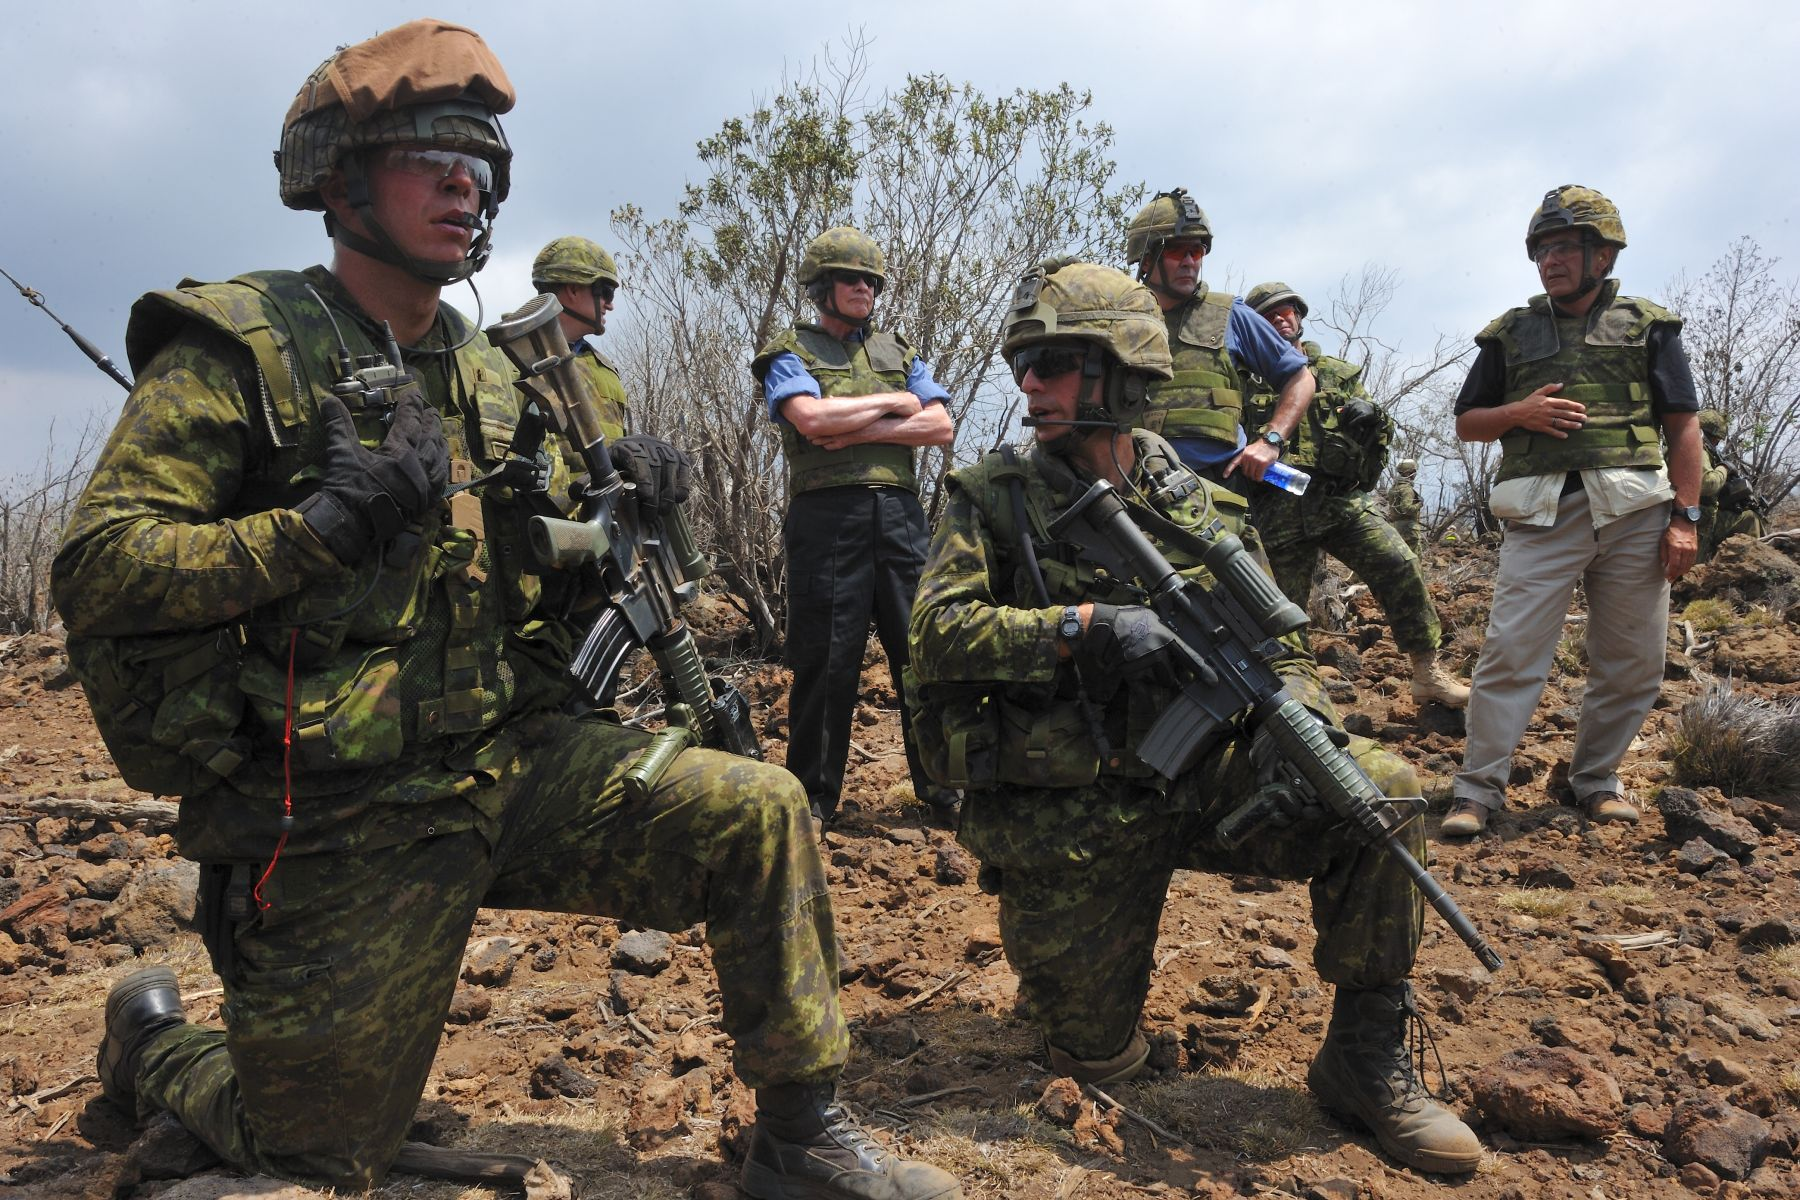 The Governor General, accompanied by the Chief of the Defence Staff, General Walt  Natynczyk, then proceeded to view a Platoon Live-Fire exercise with Canadian land forces, among them the 2nd Battalion of Princess Patricia's Canadian Light Infantry (2 PPCLI).